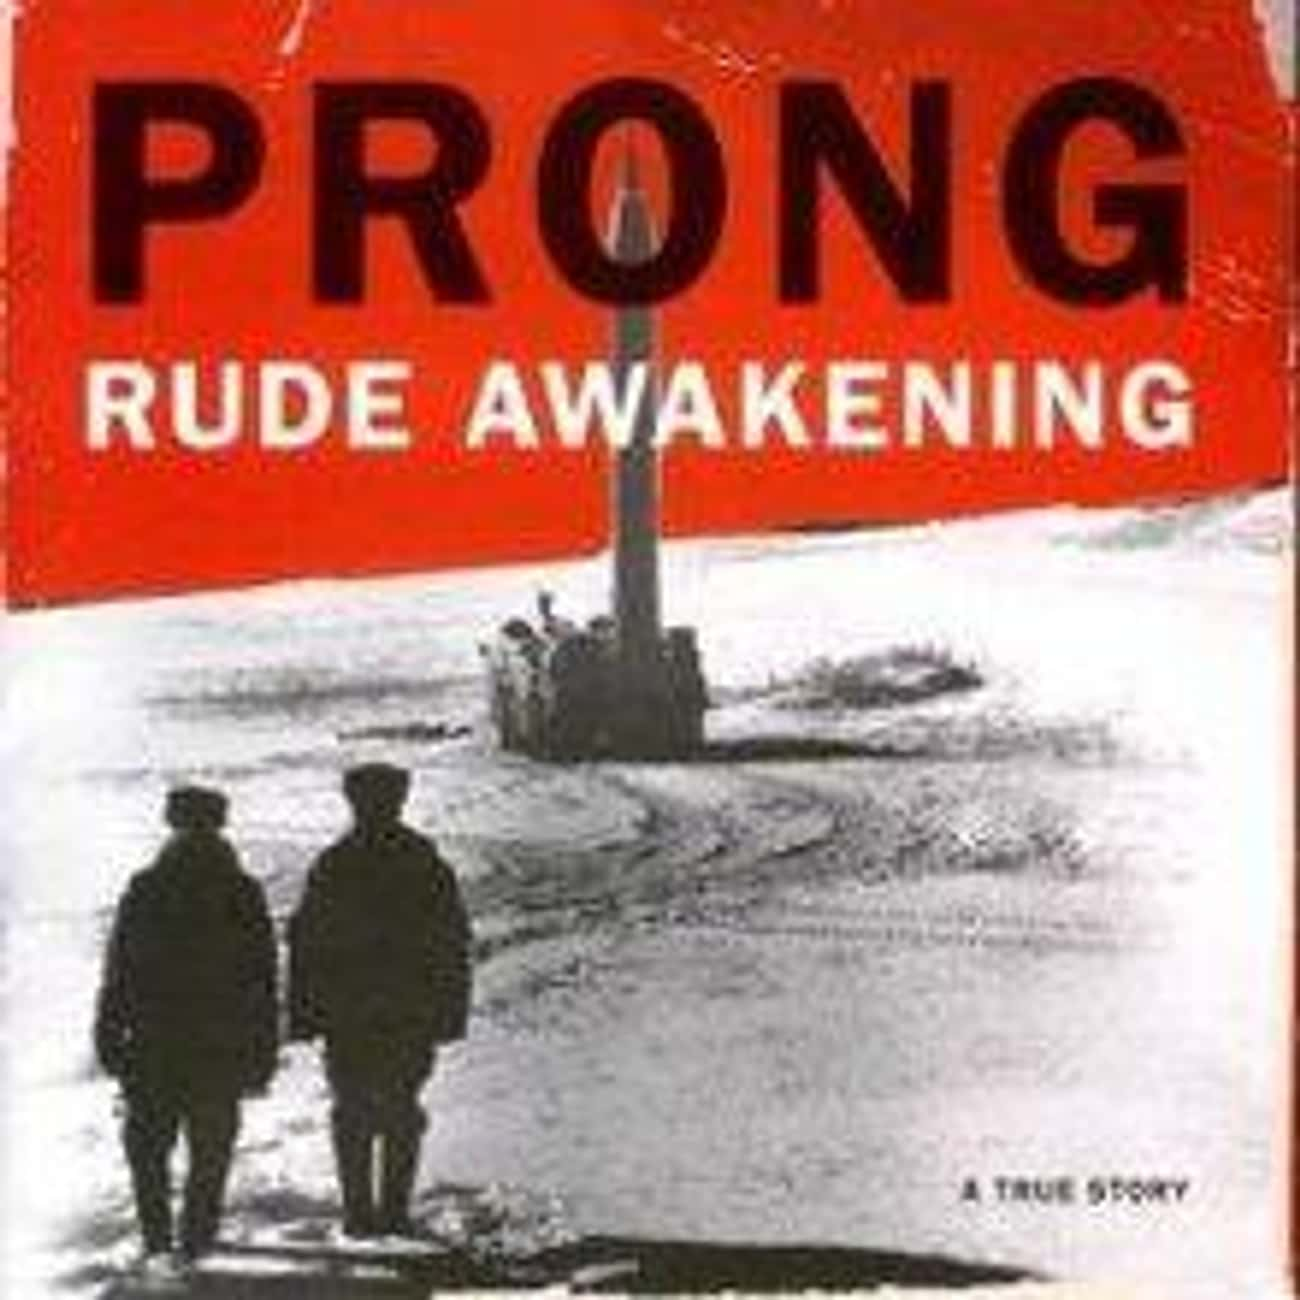 Rude Awakening is listed (or ranked) 2 on the list The Best Prong Albums of All Time